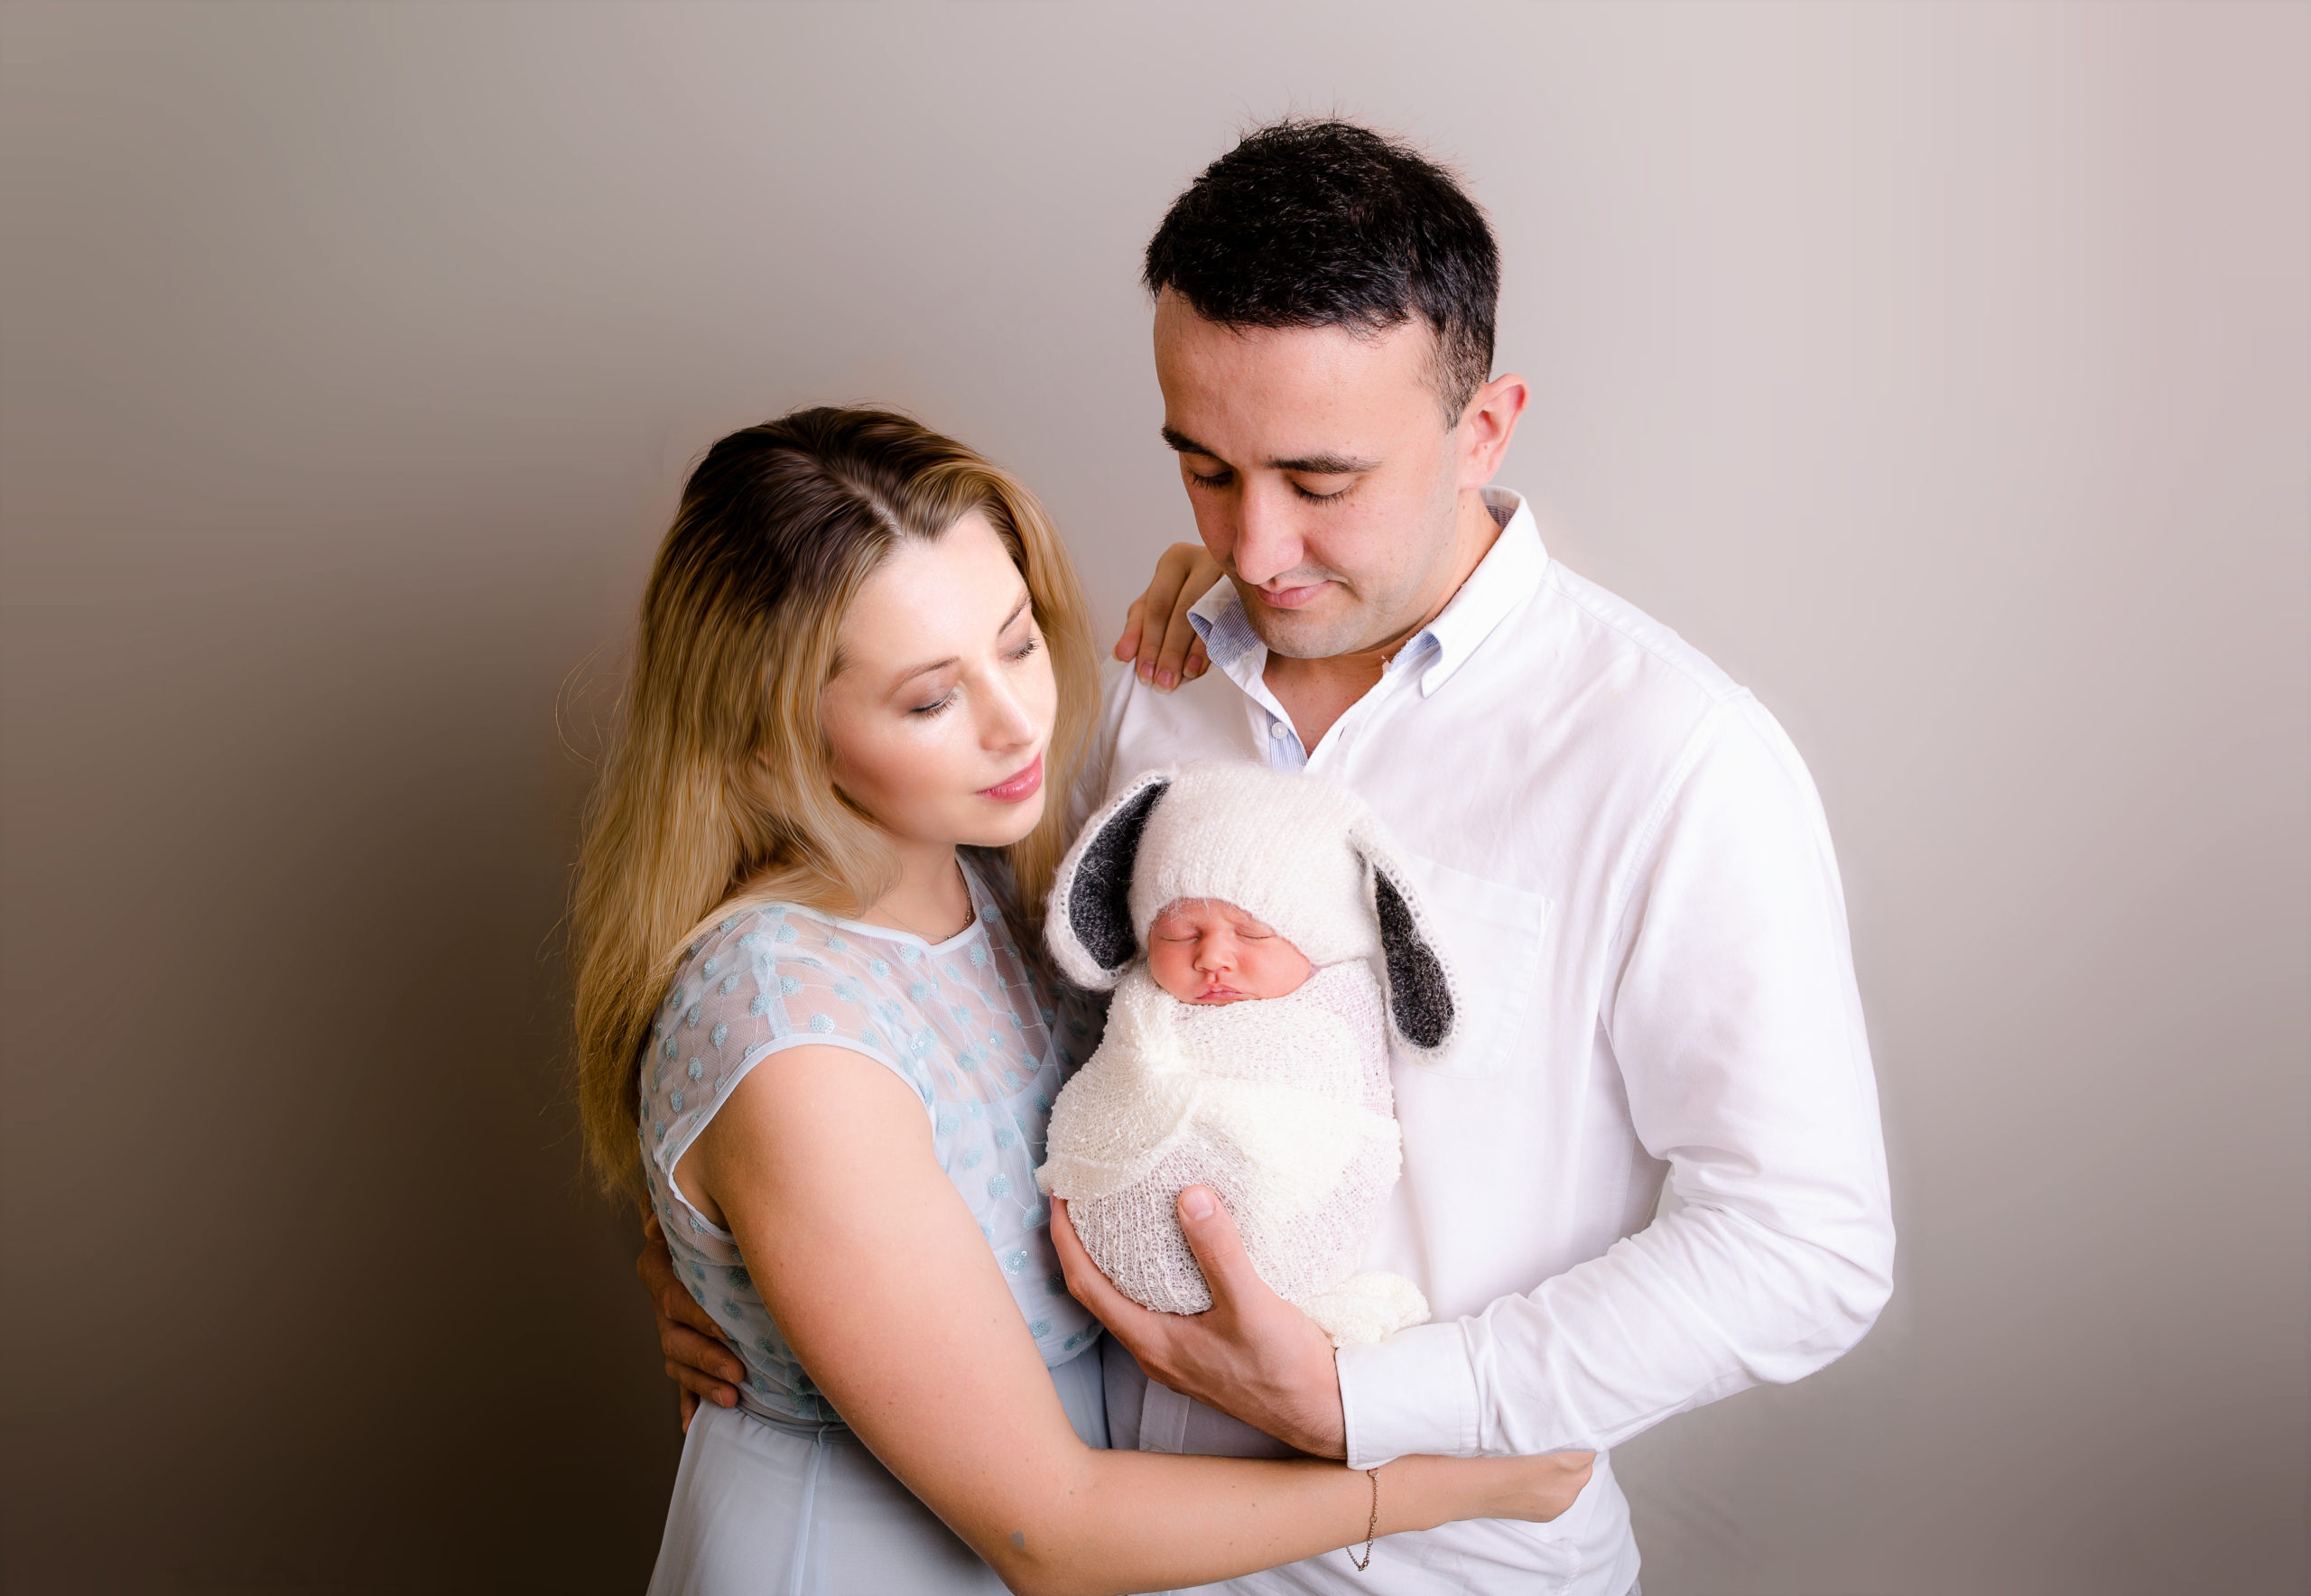 Family children and newborn baby photography new parents are holding their baby girl wrapped family portrait South West London Photo Studio SW19 Wimbledon